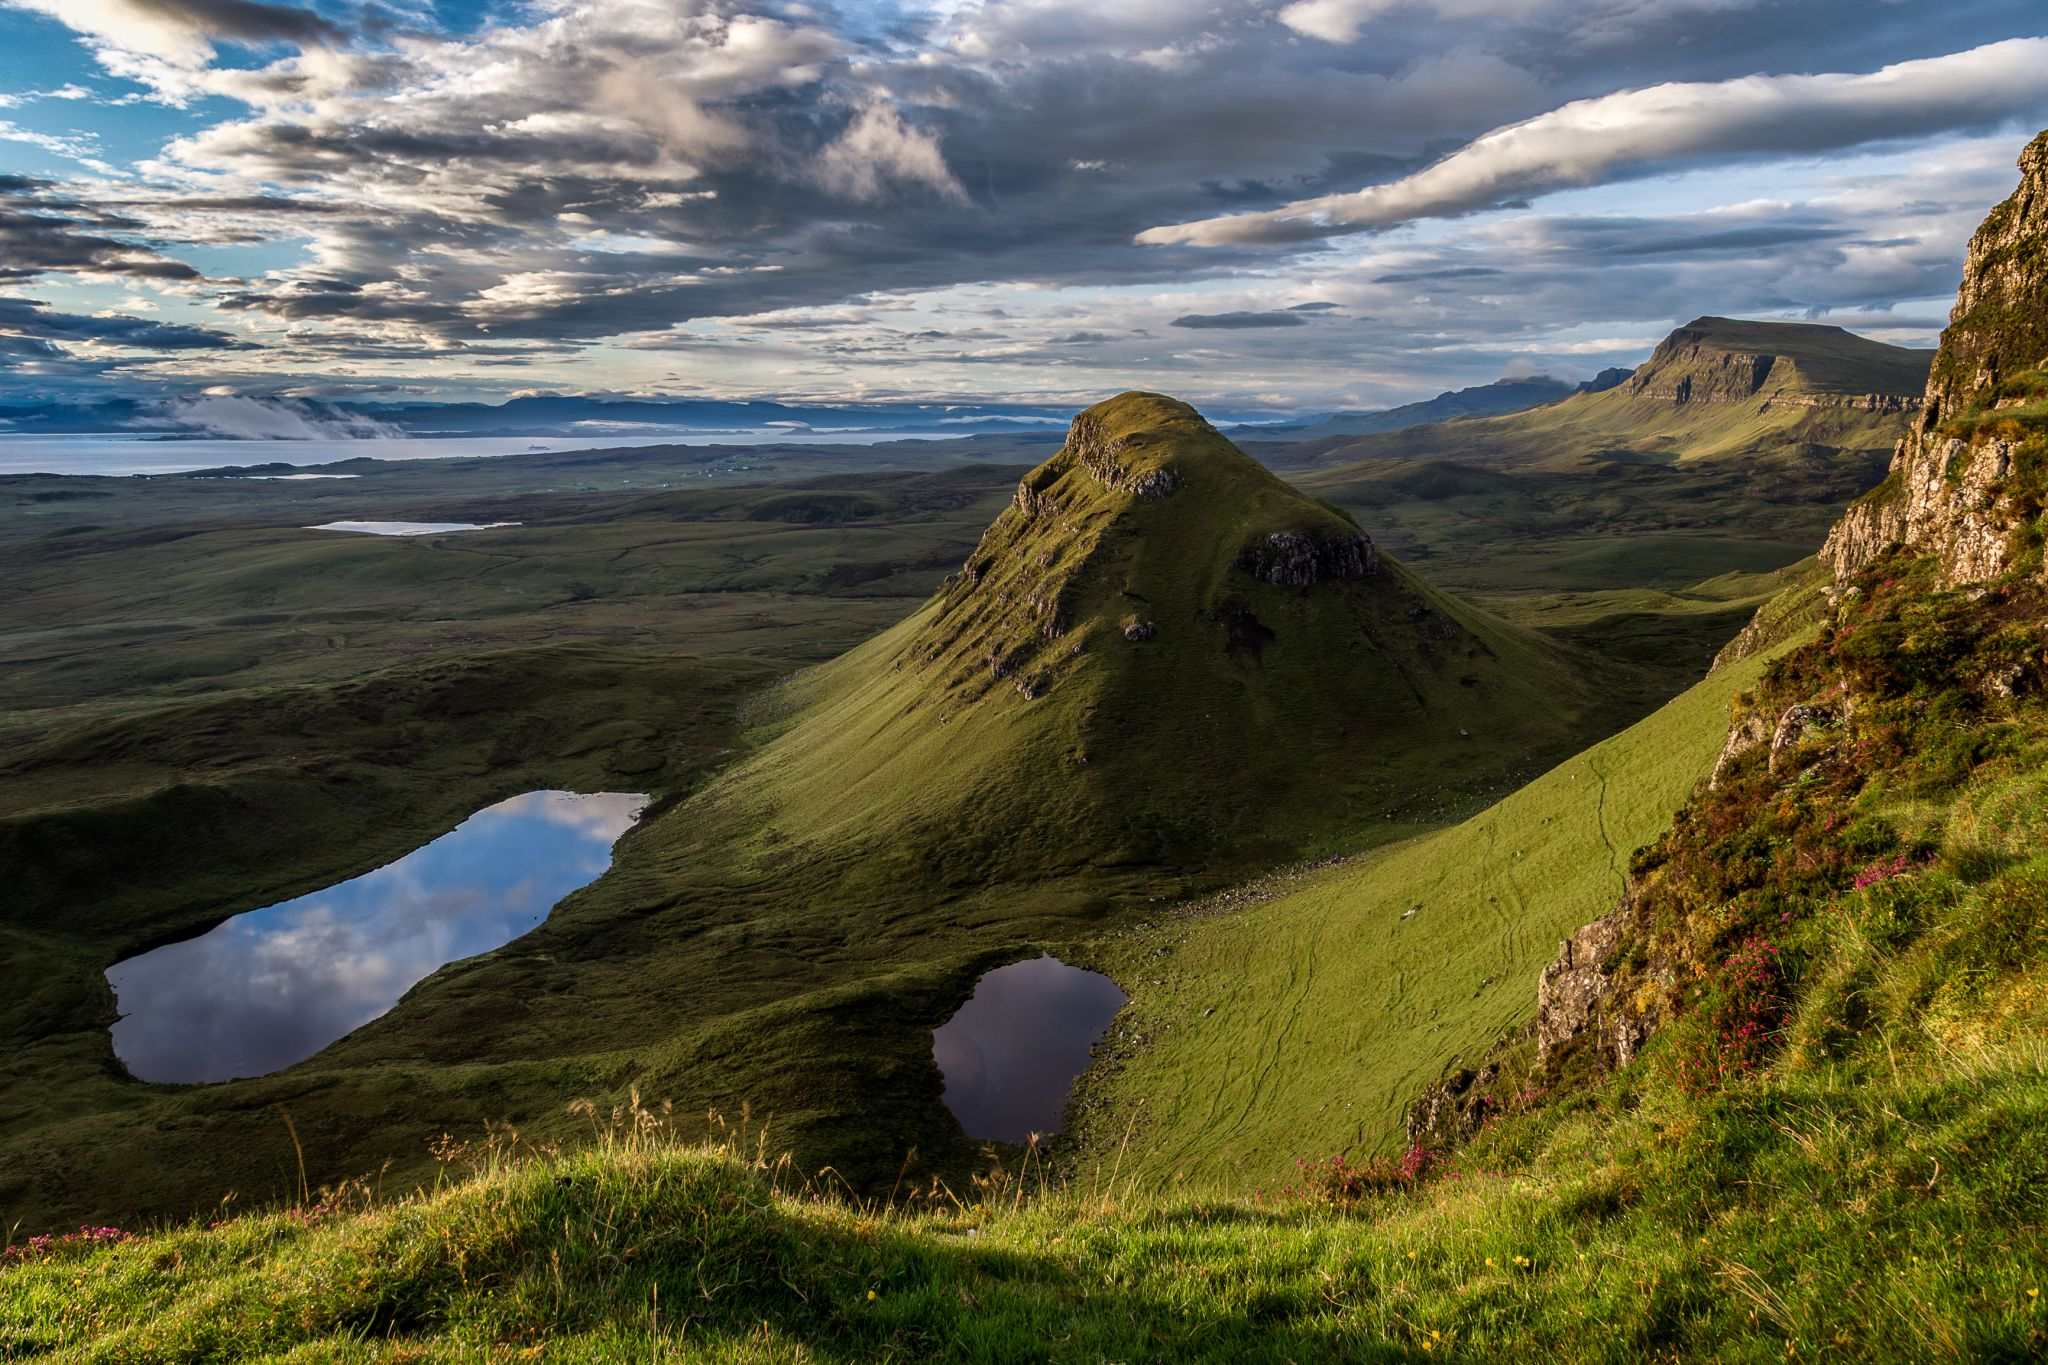 The South of Quiraing, United Kingdom